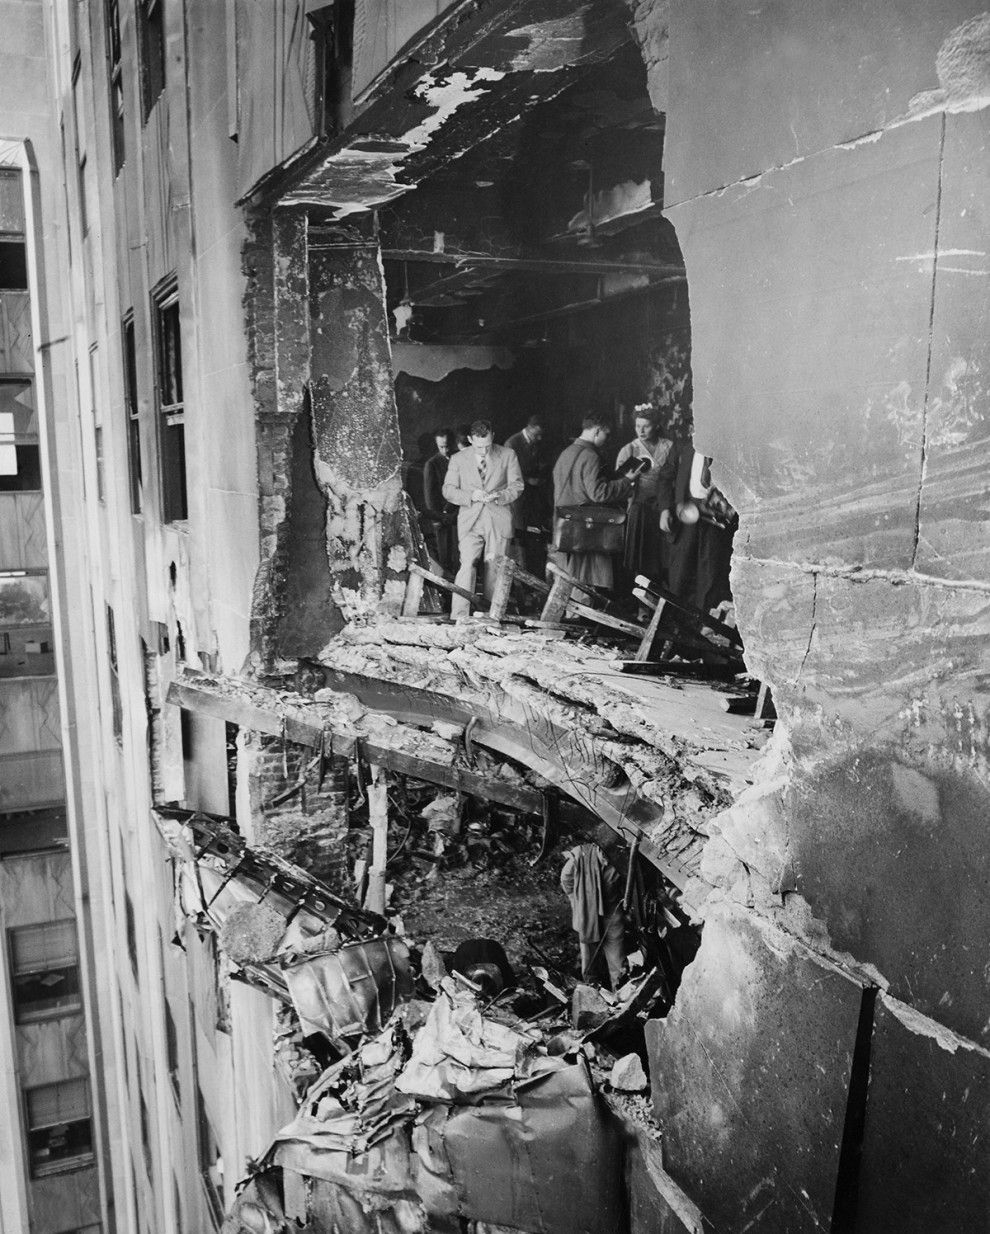 The Scorched Aftermath Of A B 25 Bomber Crash Into The Side Of The